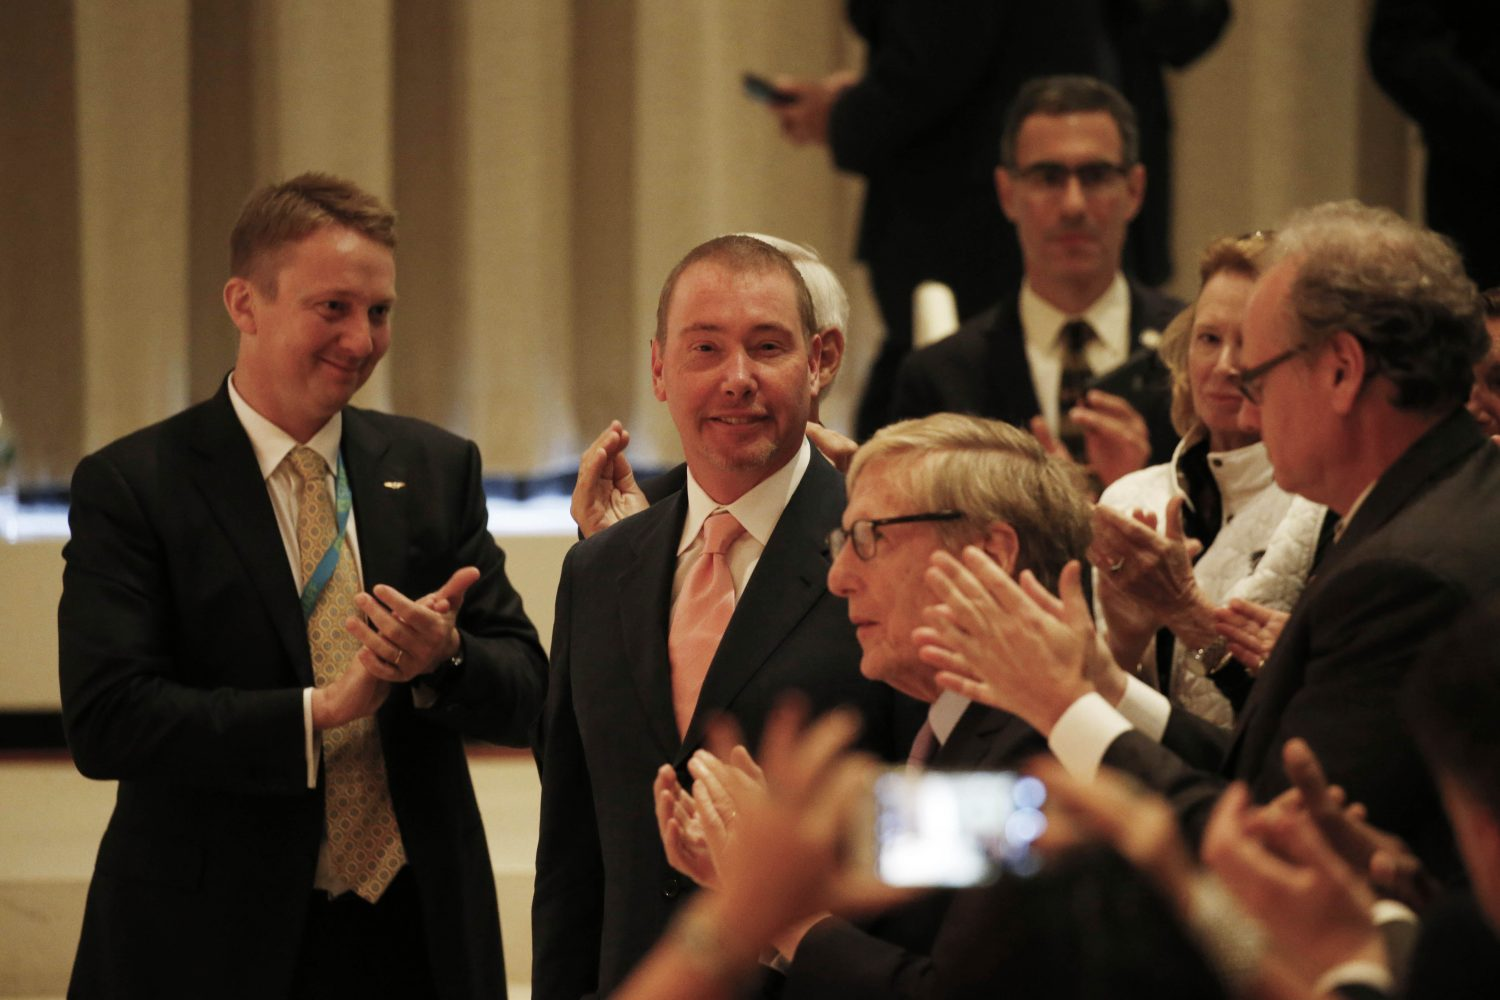 Jeffrey Gundlach, center, accepts the applause as Gov. Andrew Cuomo thanks him for his donation of $42.5 million dollars to the Albright-Knox Art Gallery. (Derek Gee/Buffalo News)